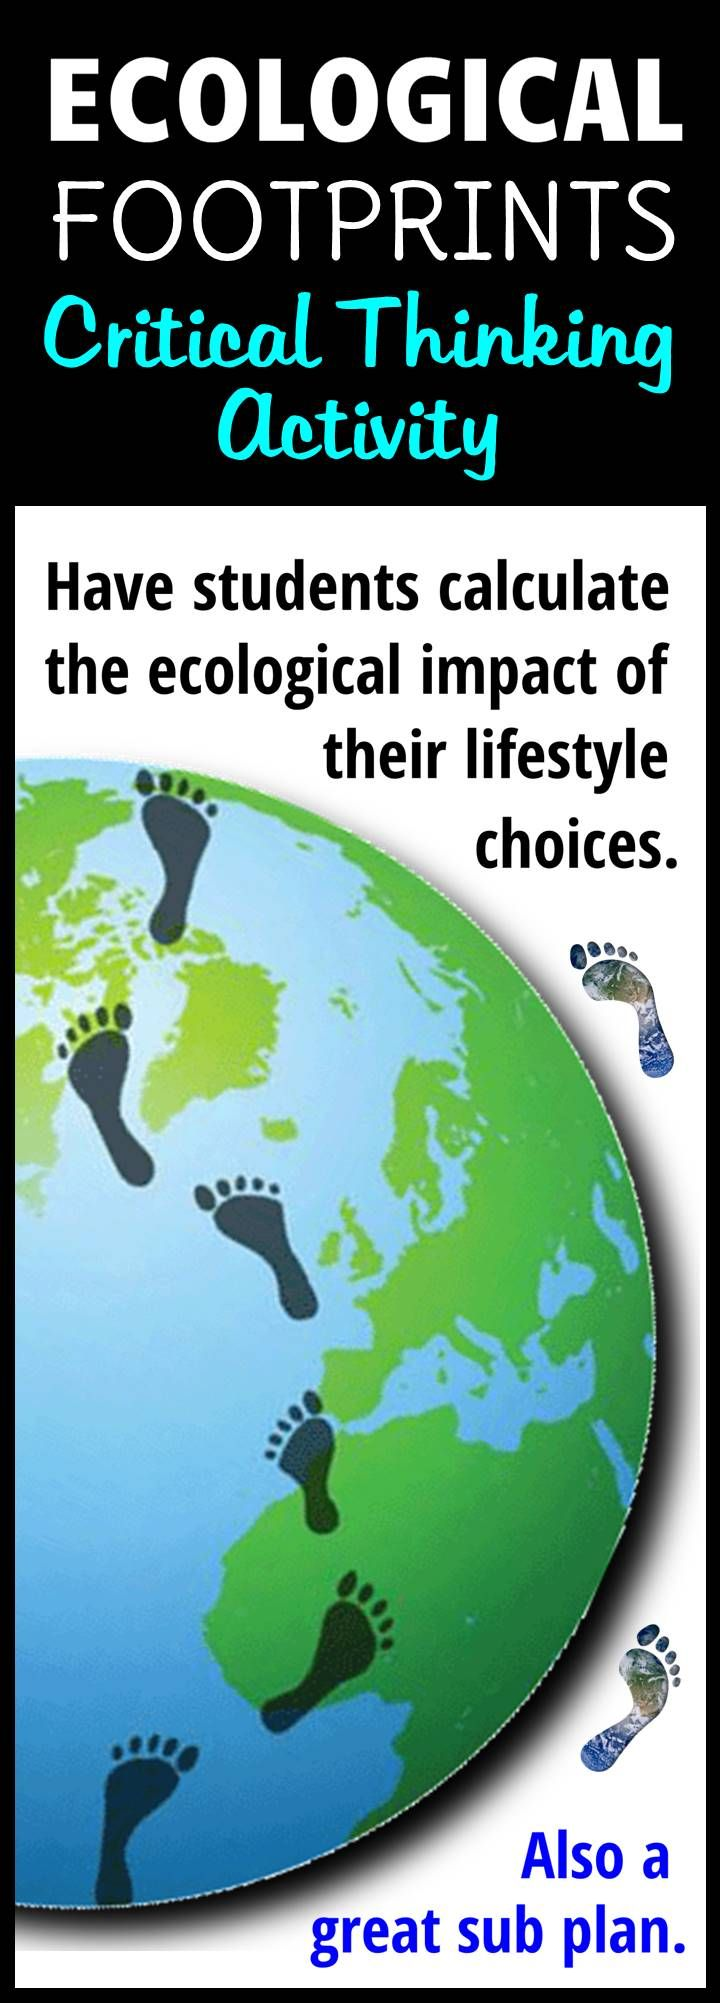 Have Students Calculate Their Ecological Footprints So That They Can See The Impact Their Lifestyle Decis Ecology Ecological Footprint Ap Environmental Science